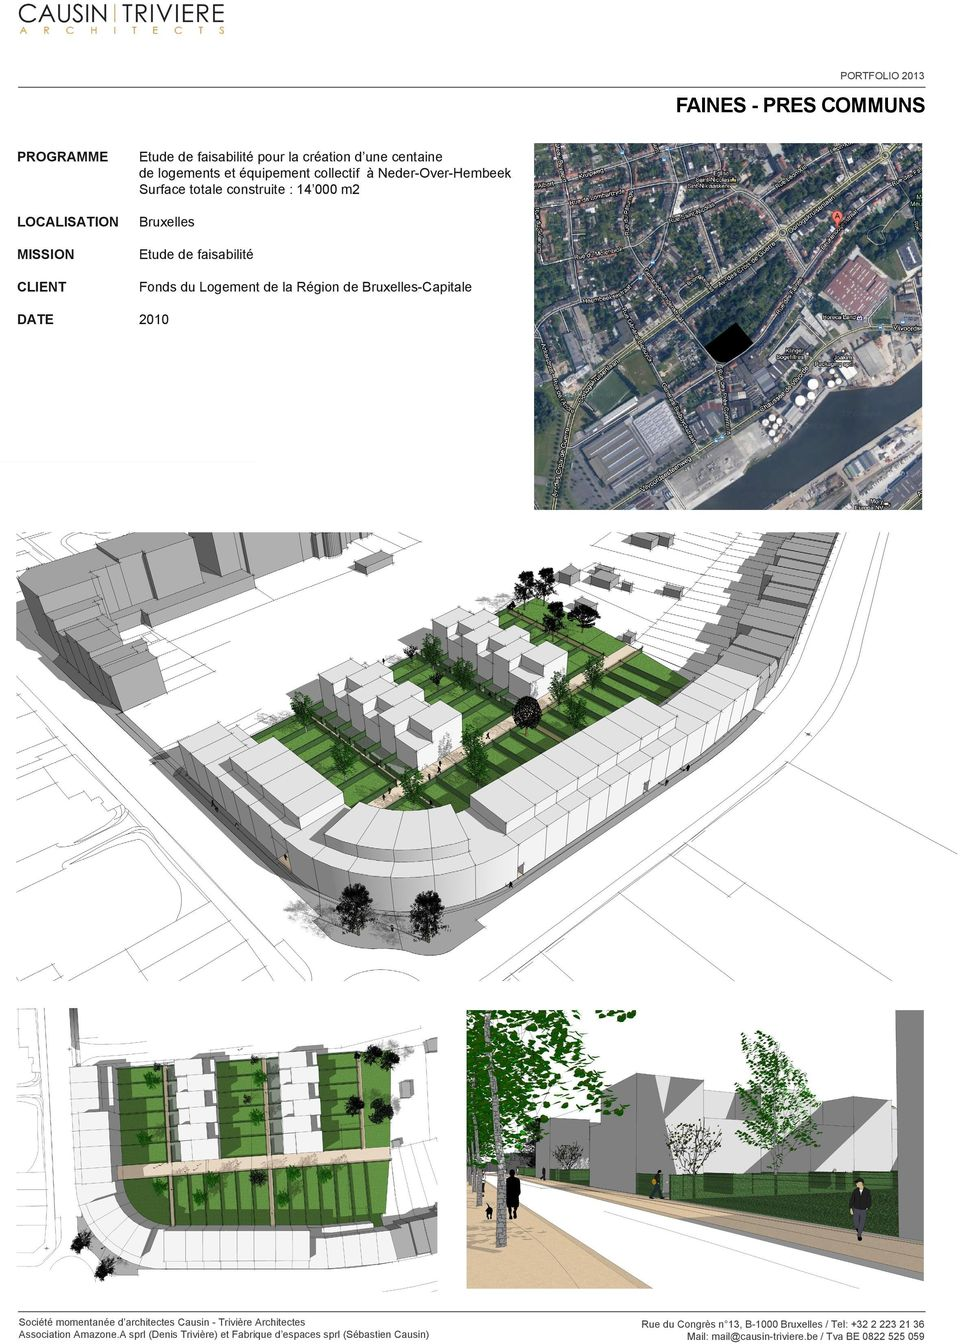 Neder-Over-embeek Surface totale construite : 14 000 m2 Bruxelles